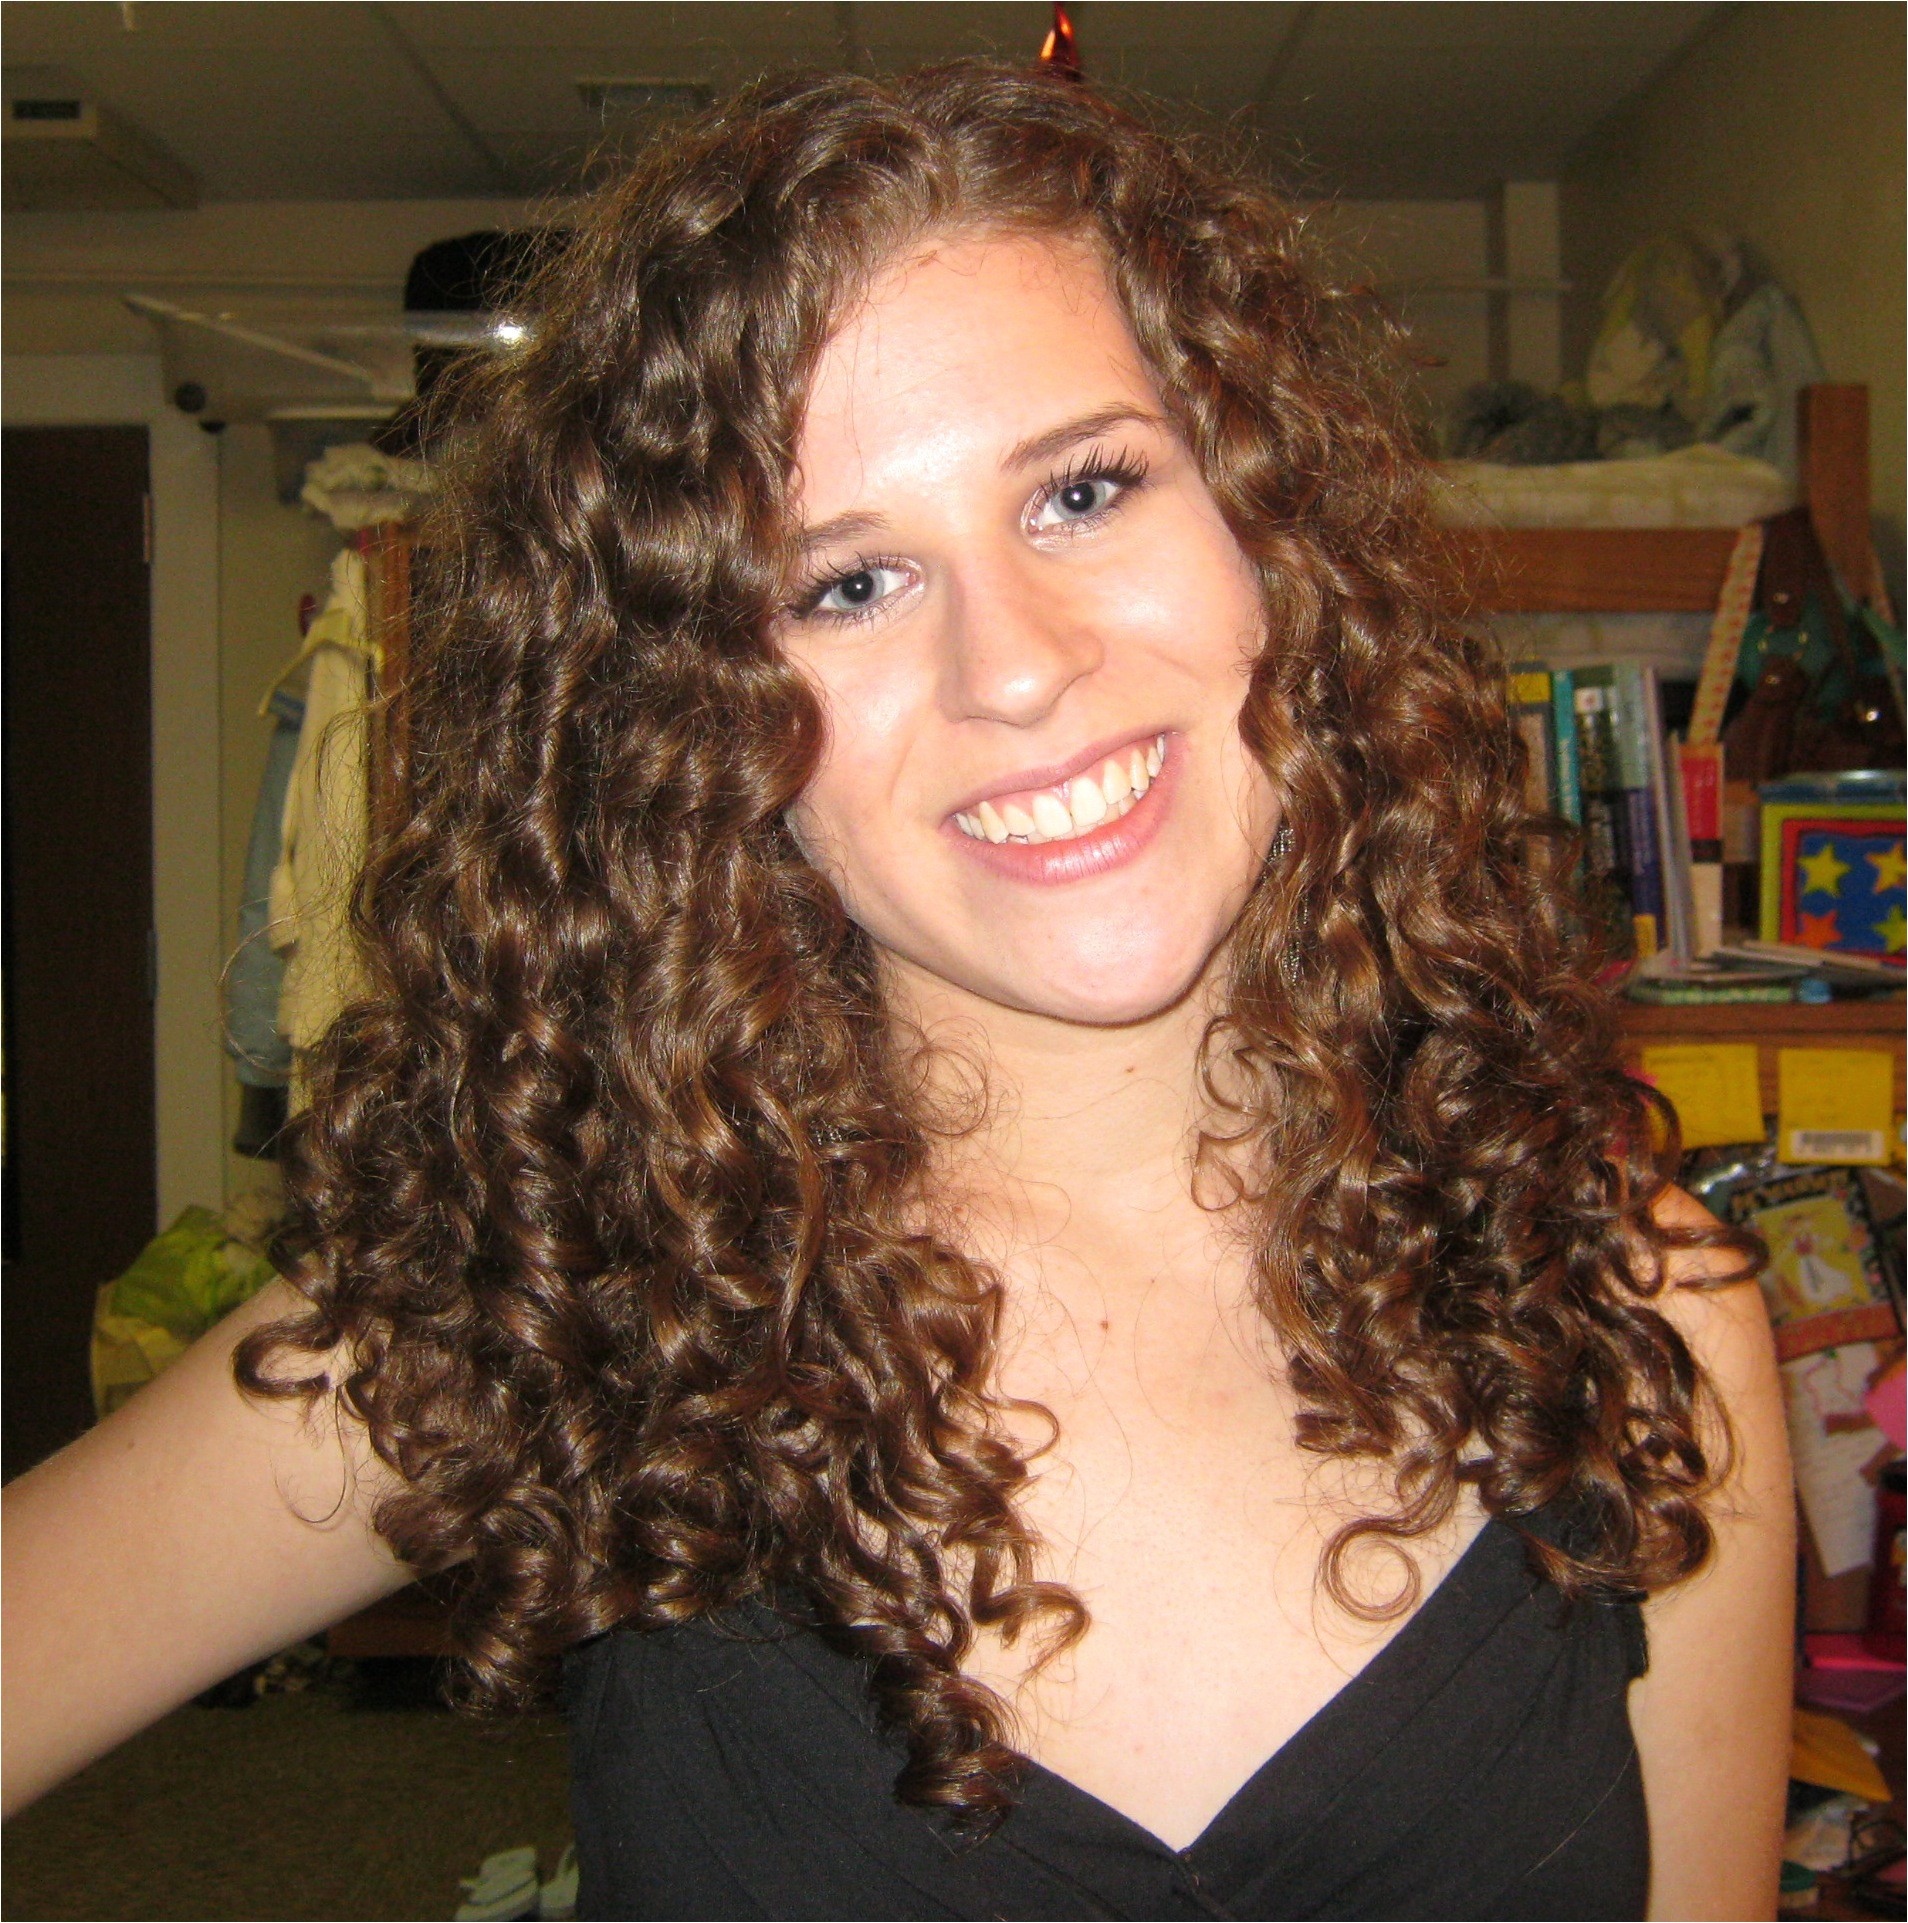 Braided Hairstyles for Curly Hair Lovely Curly Hairstyles Luxury Very Curly Hairstyles Fresh Curly Hair 0d